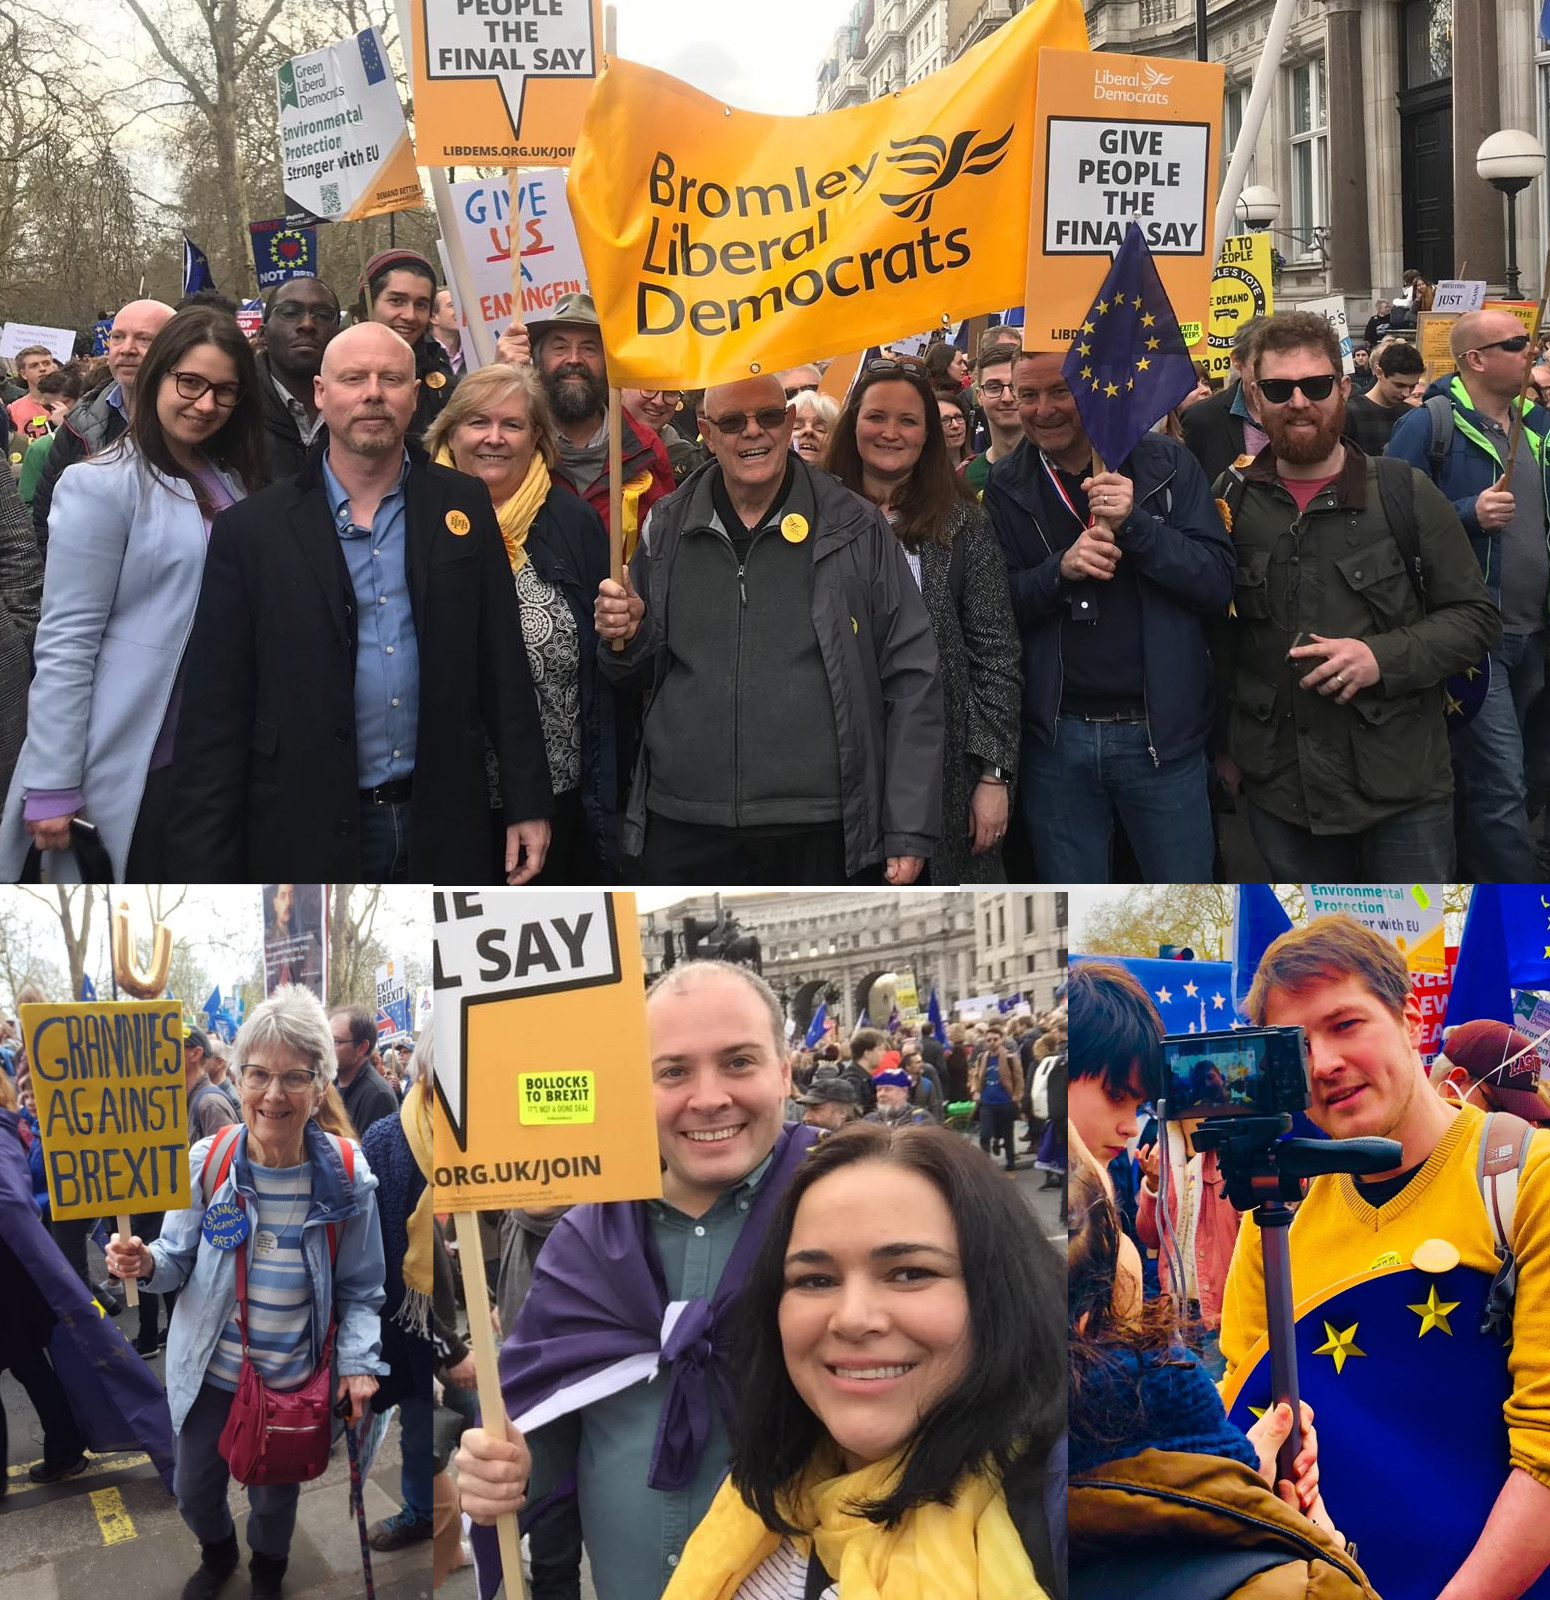 Bromley Liberal Democrats Join 1 Million on March Against Brexit